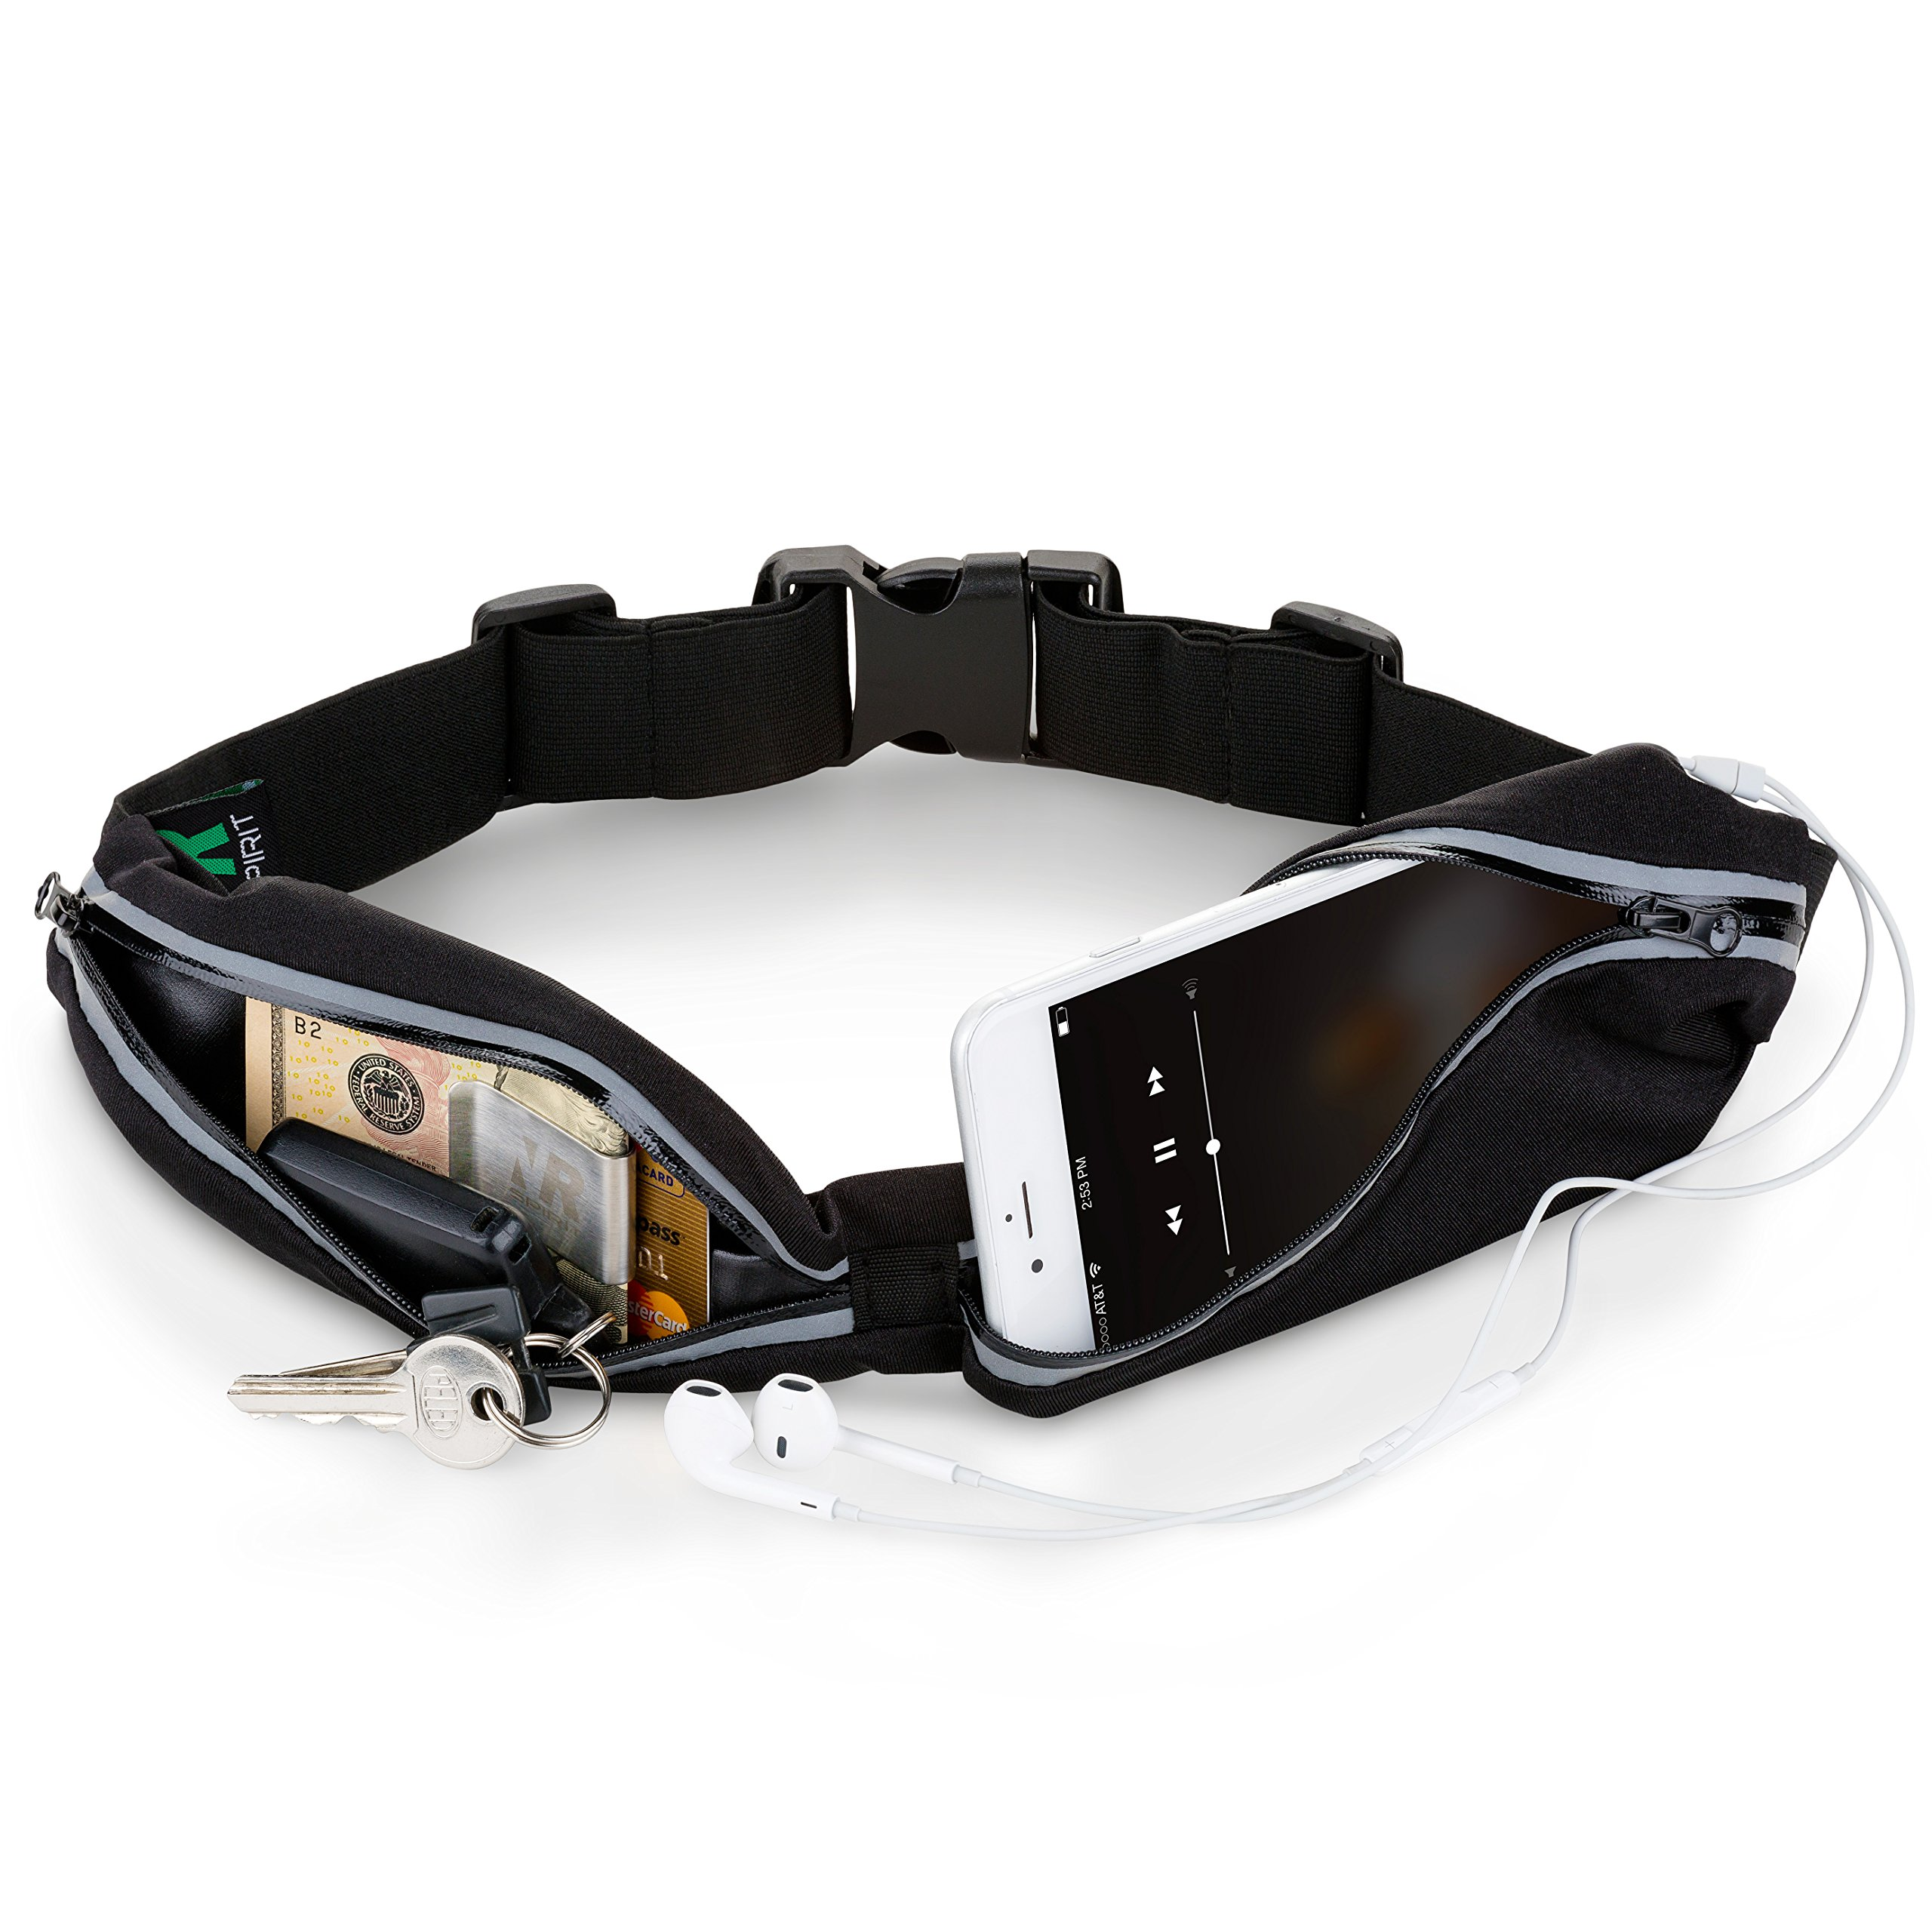 Running Belt for Phone: iPhone & Samsung Galaxy Waterproof Adjustable Fanny Pack Money Belt Wallet. Reflective Running Waist Pack with Expandable Hands-Free Workout & Fitness Pockets. Bonus Money Clip